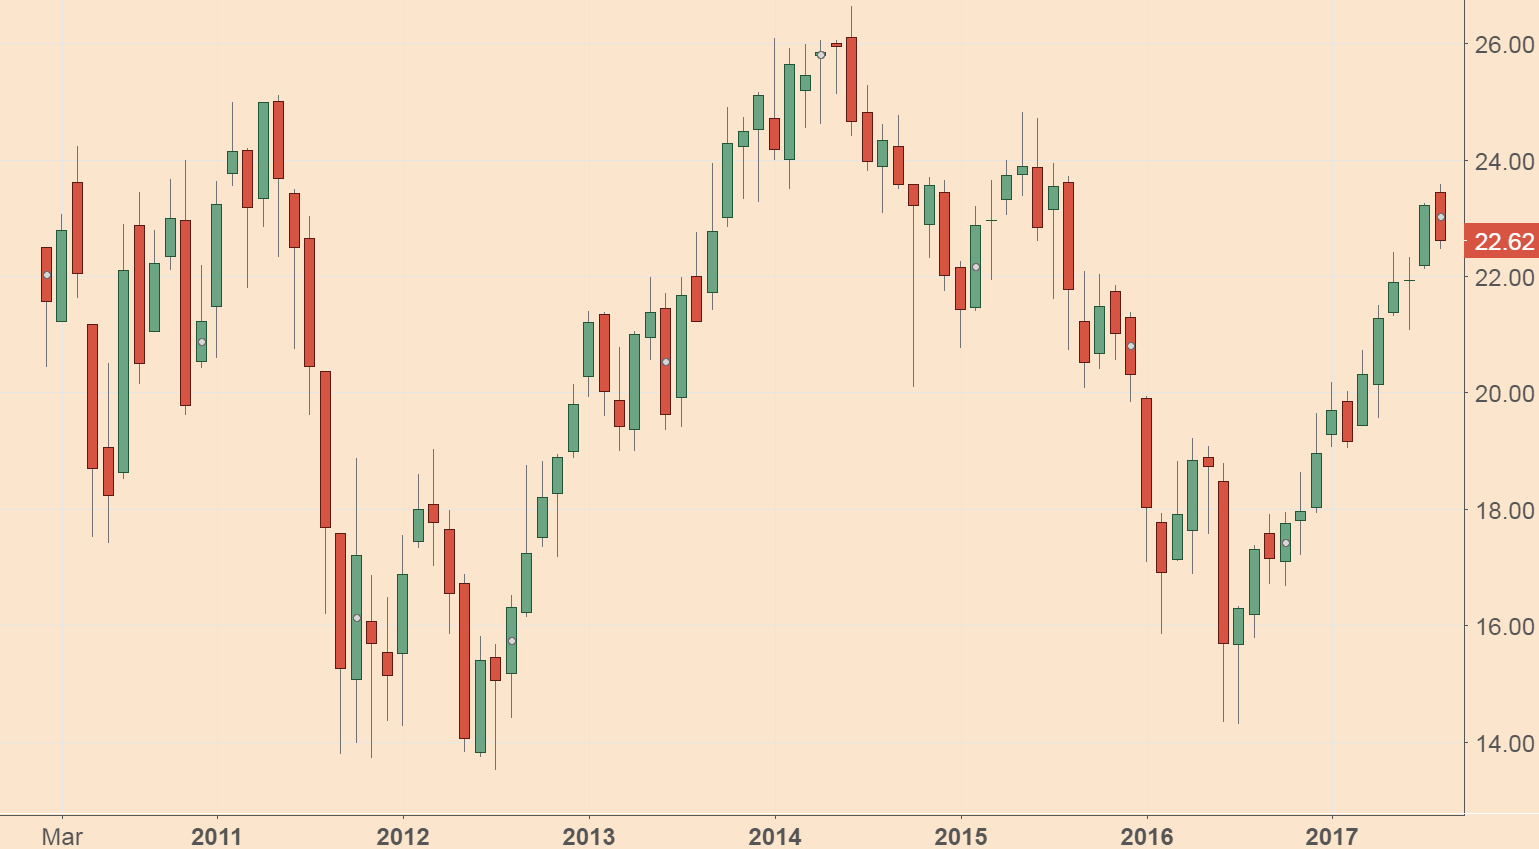 I've been bullish on European banks for a while now. But there's still time to buy them and ride this sector even higher.